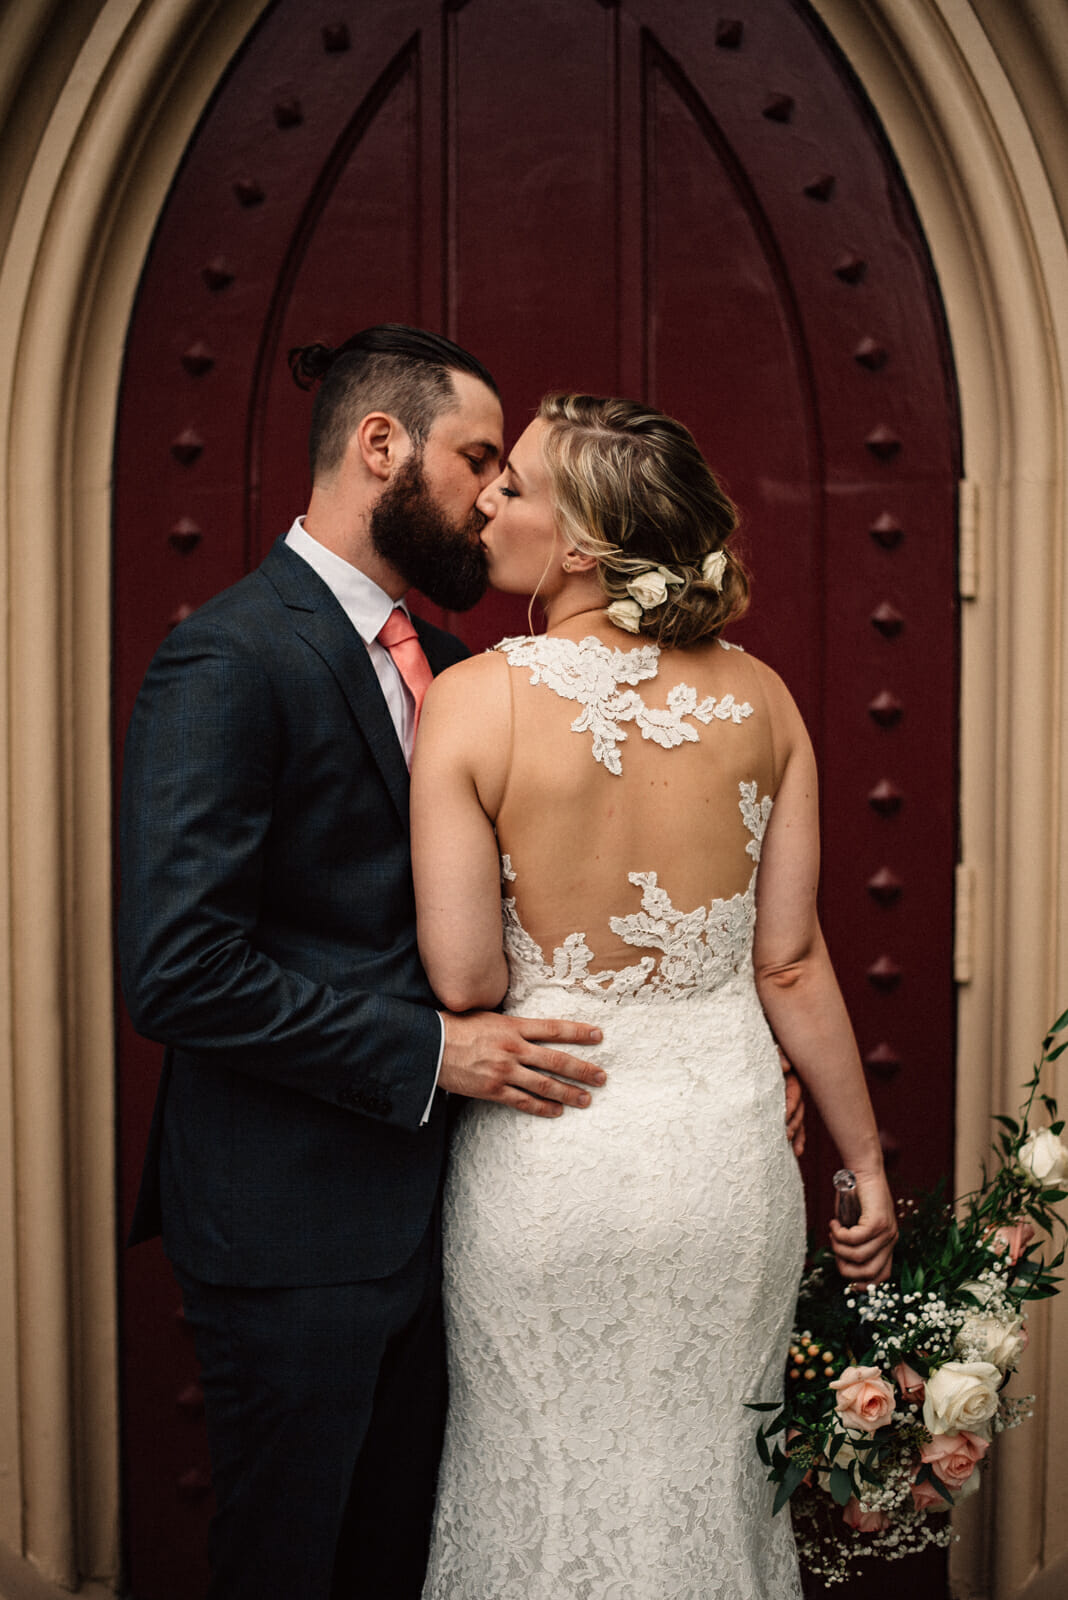 bride and groom kiss during wedding photos in front of red church door